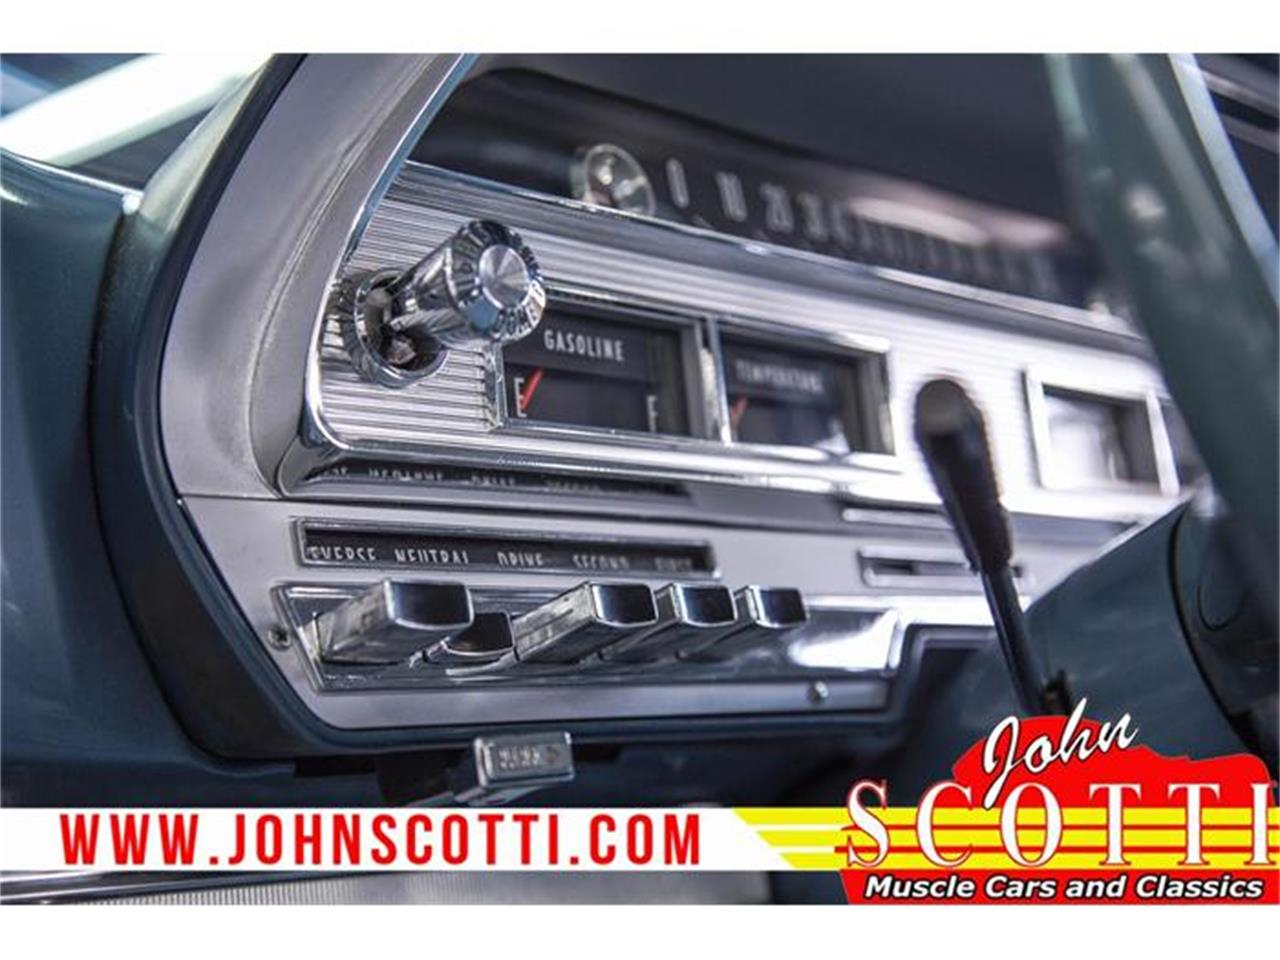 Large Picture of 1963 Dodge Polara - $54,500.00 Offered by John Scotti Classic Cars - GA0M